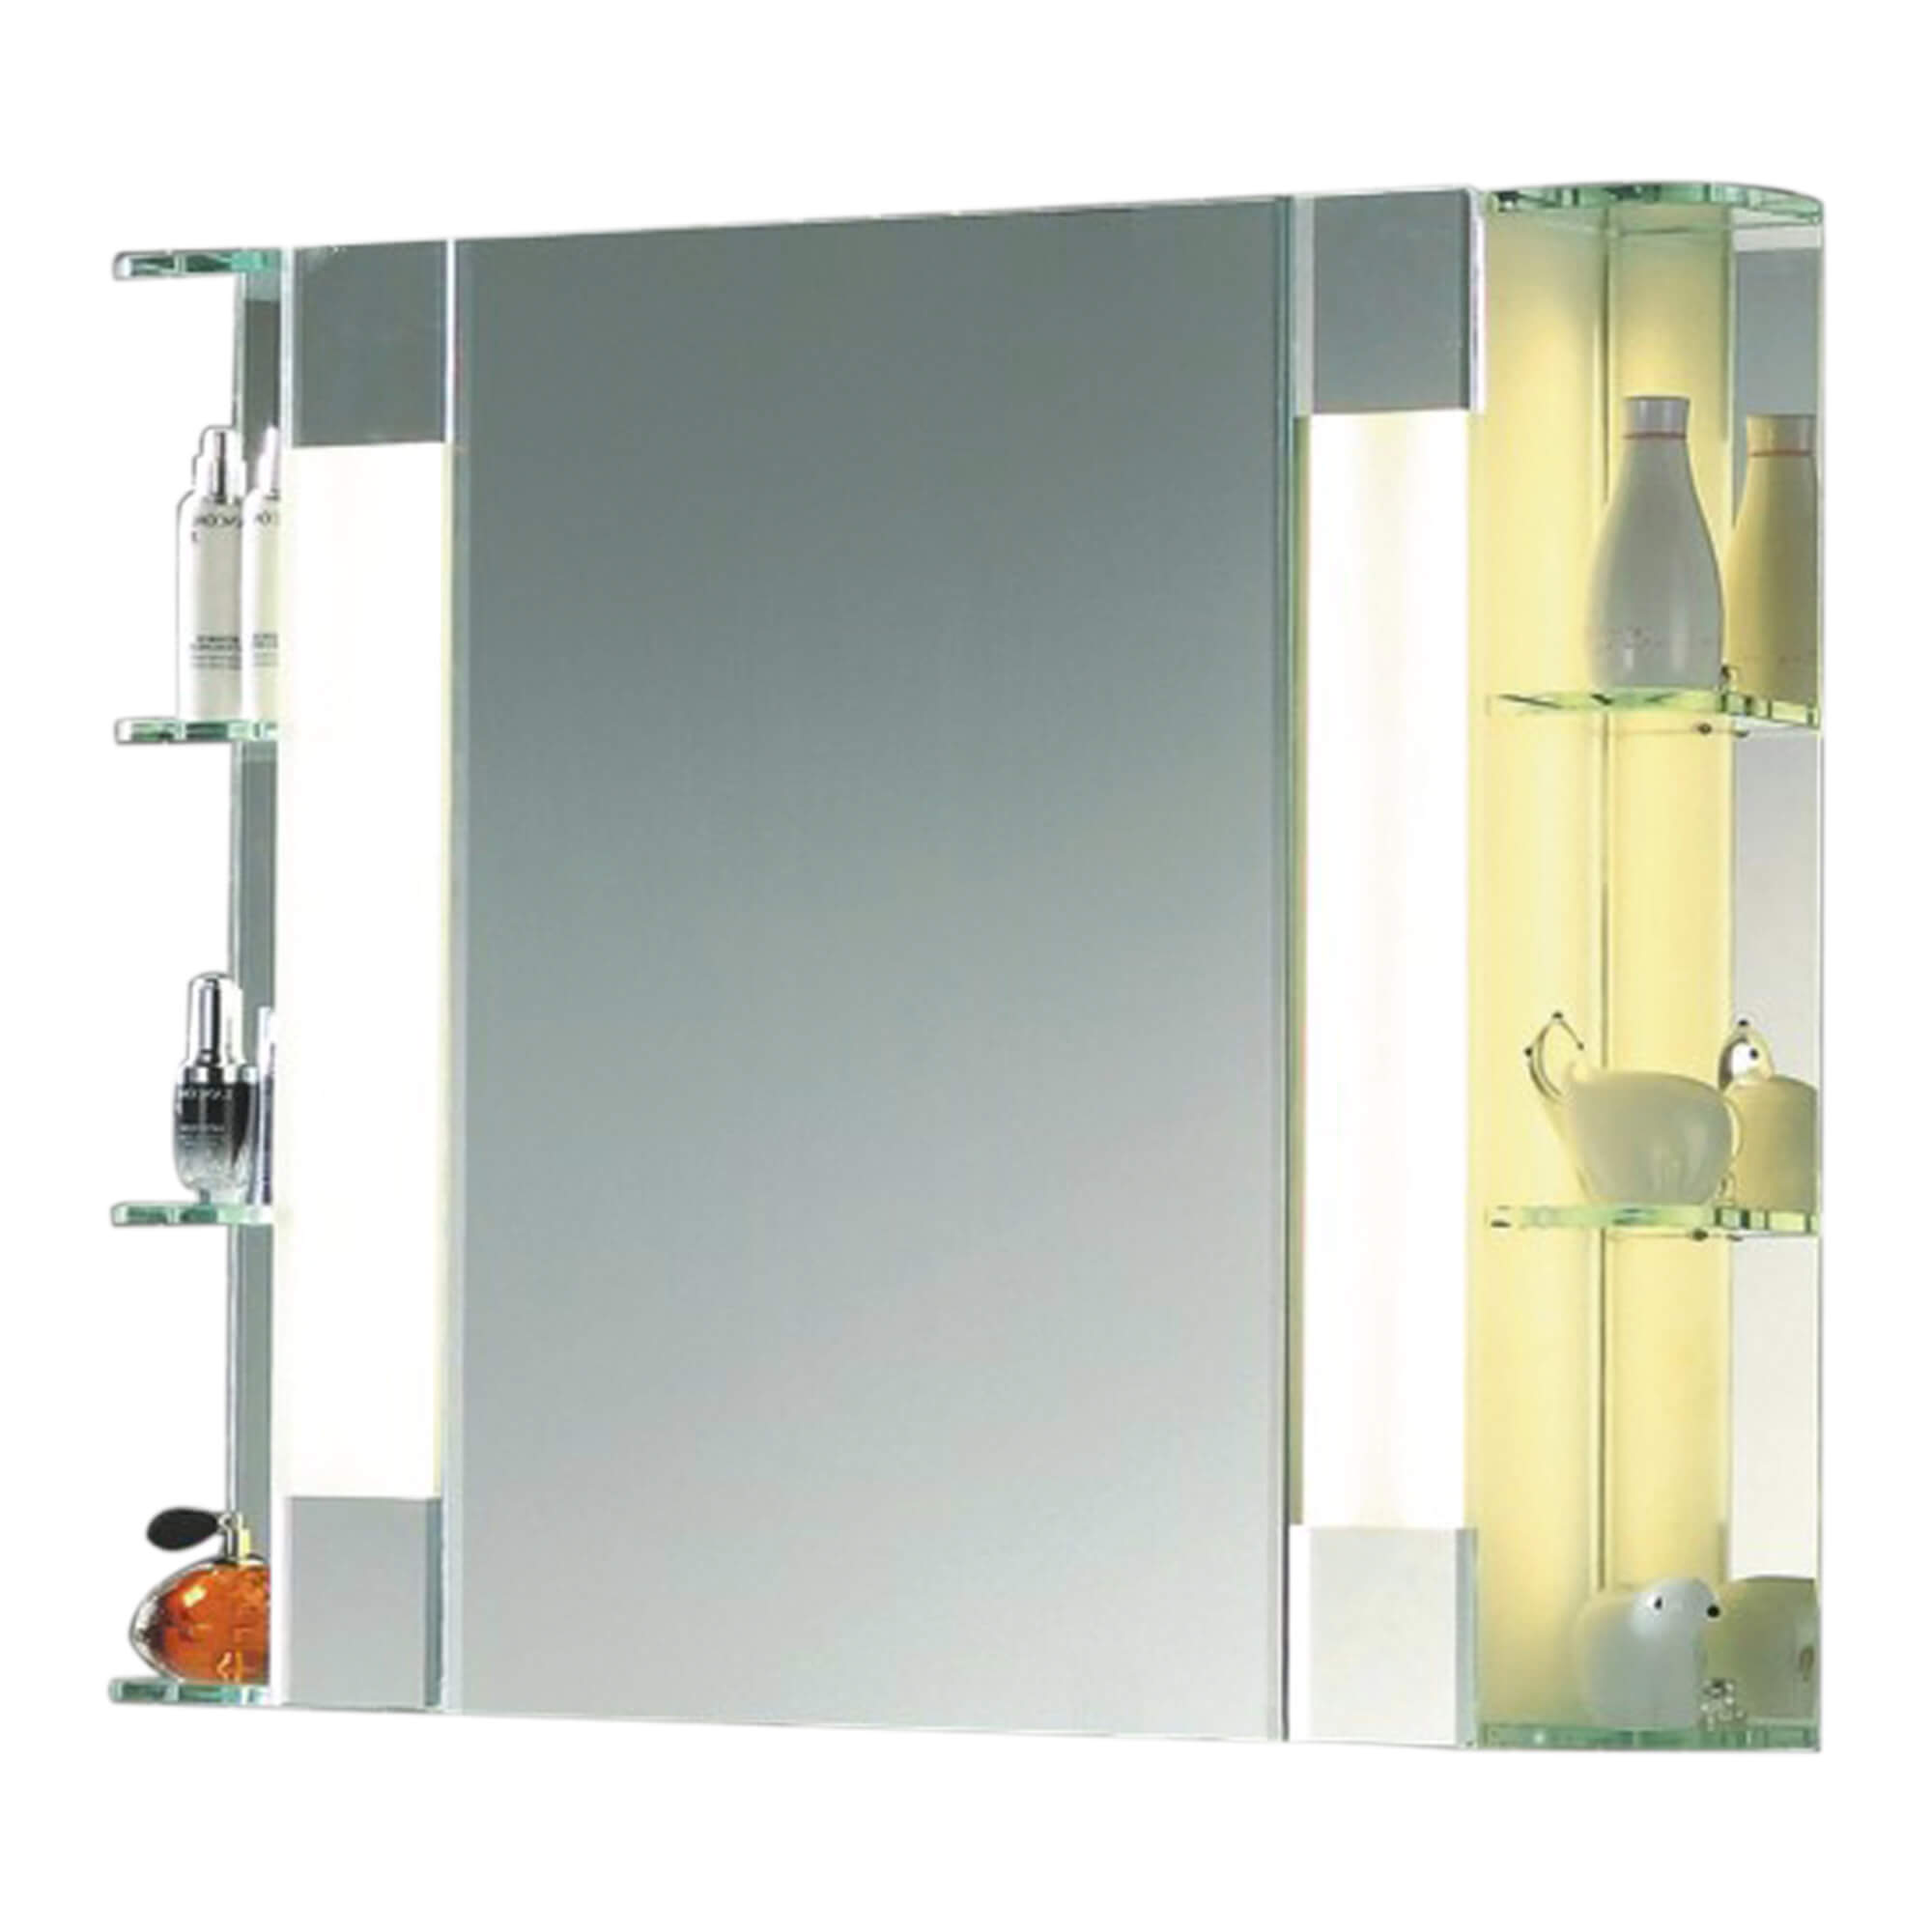 Bathroom Mirror Cabinet W/ LED Lights & adjustable Shelves